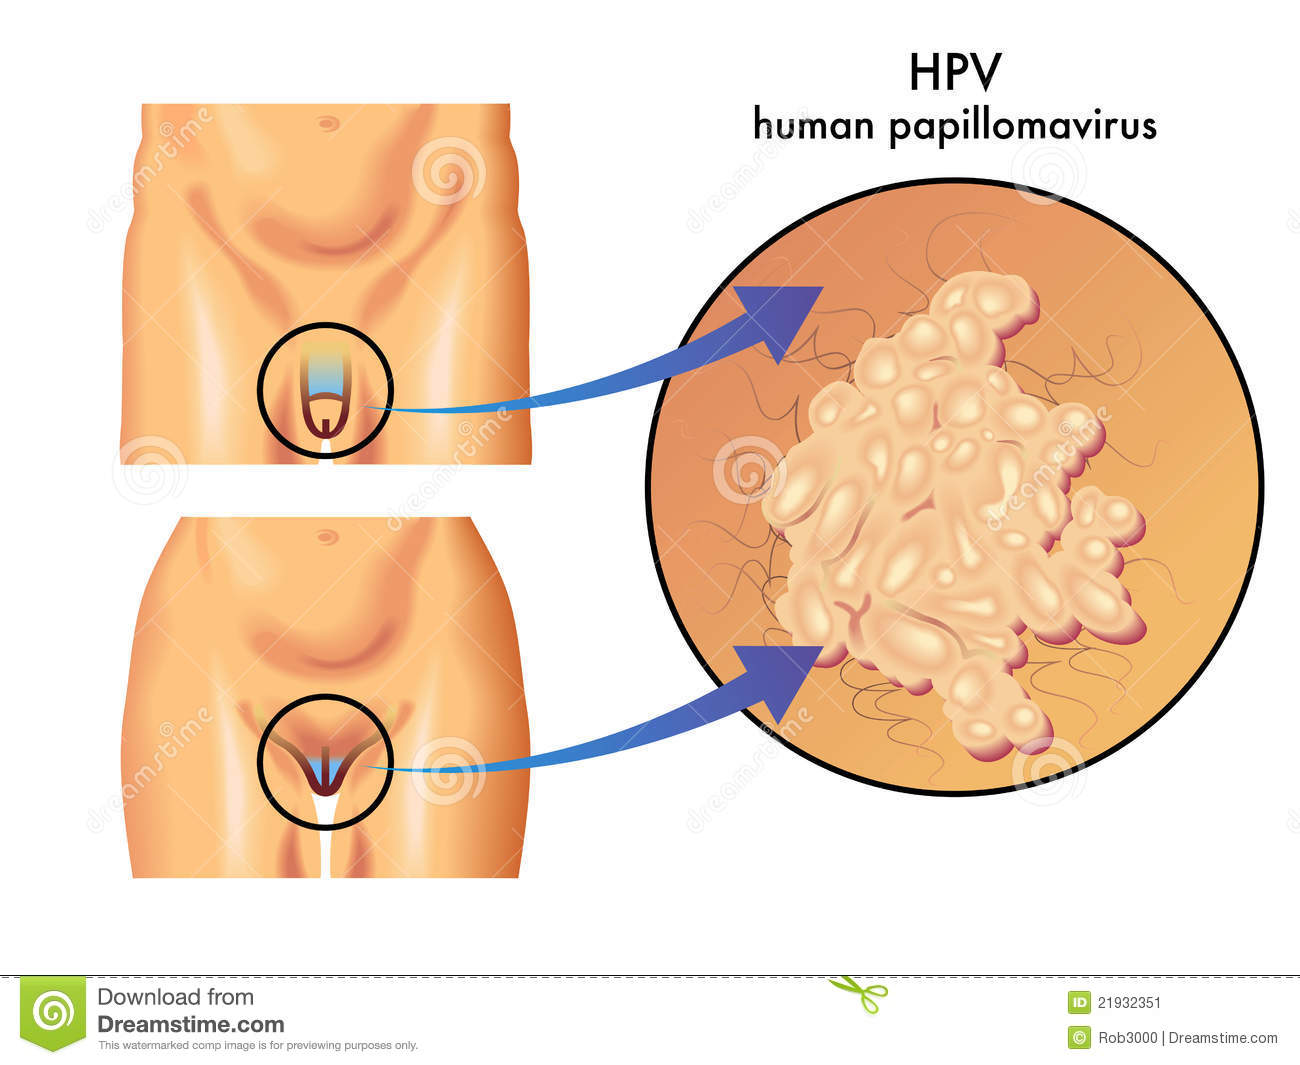 hpv vaccine hong kong hpv vaccine causing cervical cancer